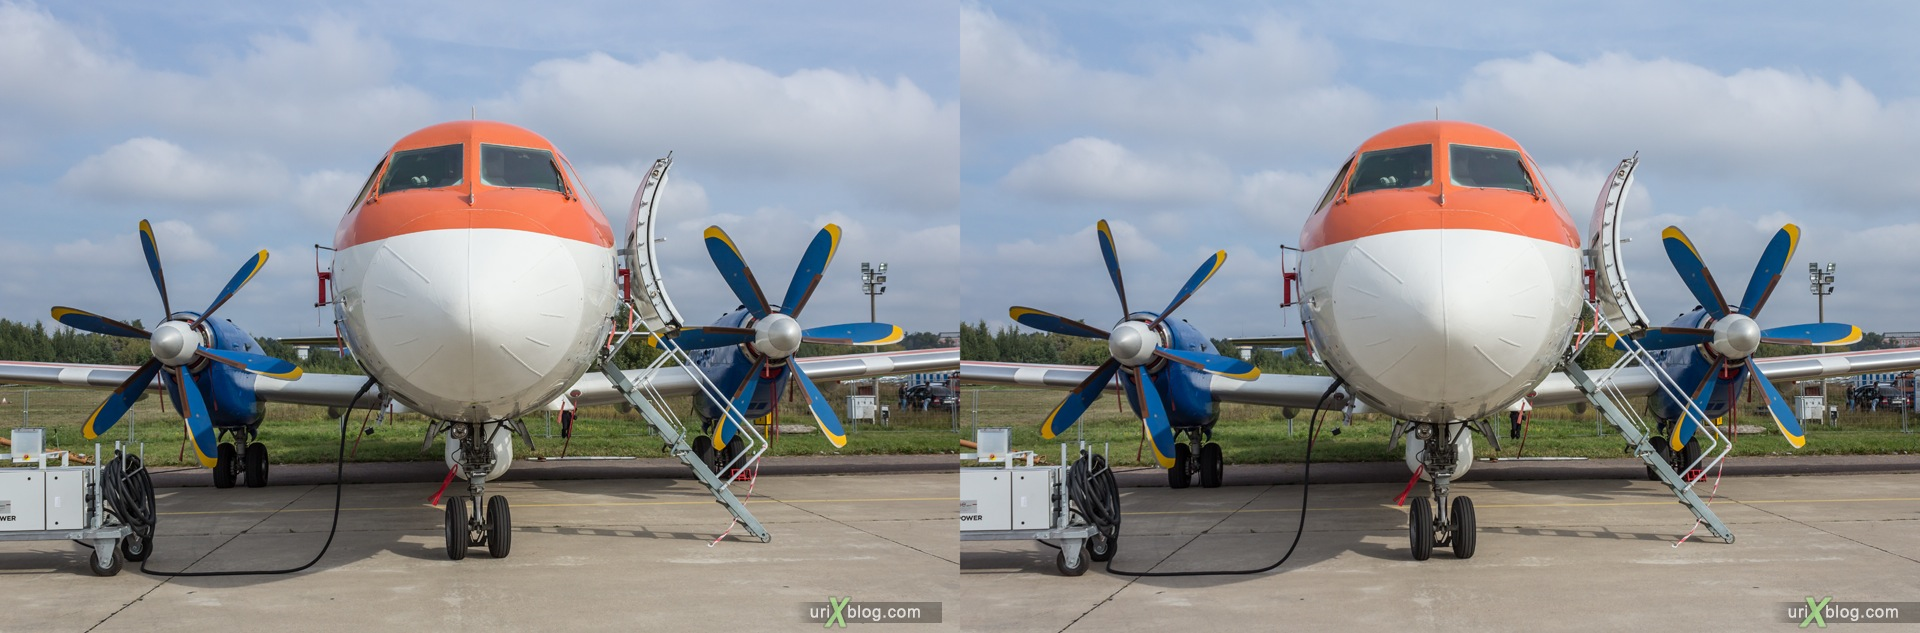 2013, Il-114, MAKS, International Aviation and Space Salon, Russia, Ramenskoye airfield, airplane, 3D, stereo pair, cross-eyed, crossview, cross view stereo pair, stereoscopic